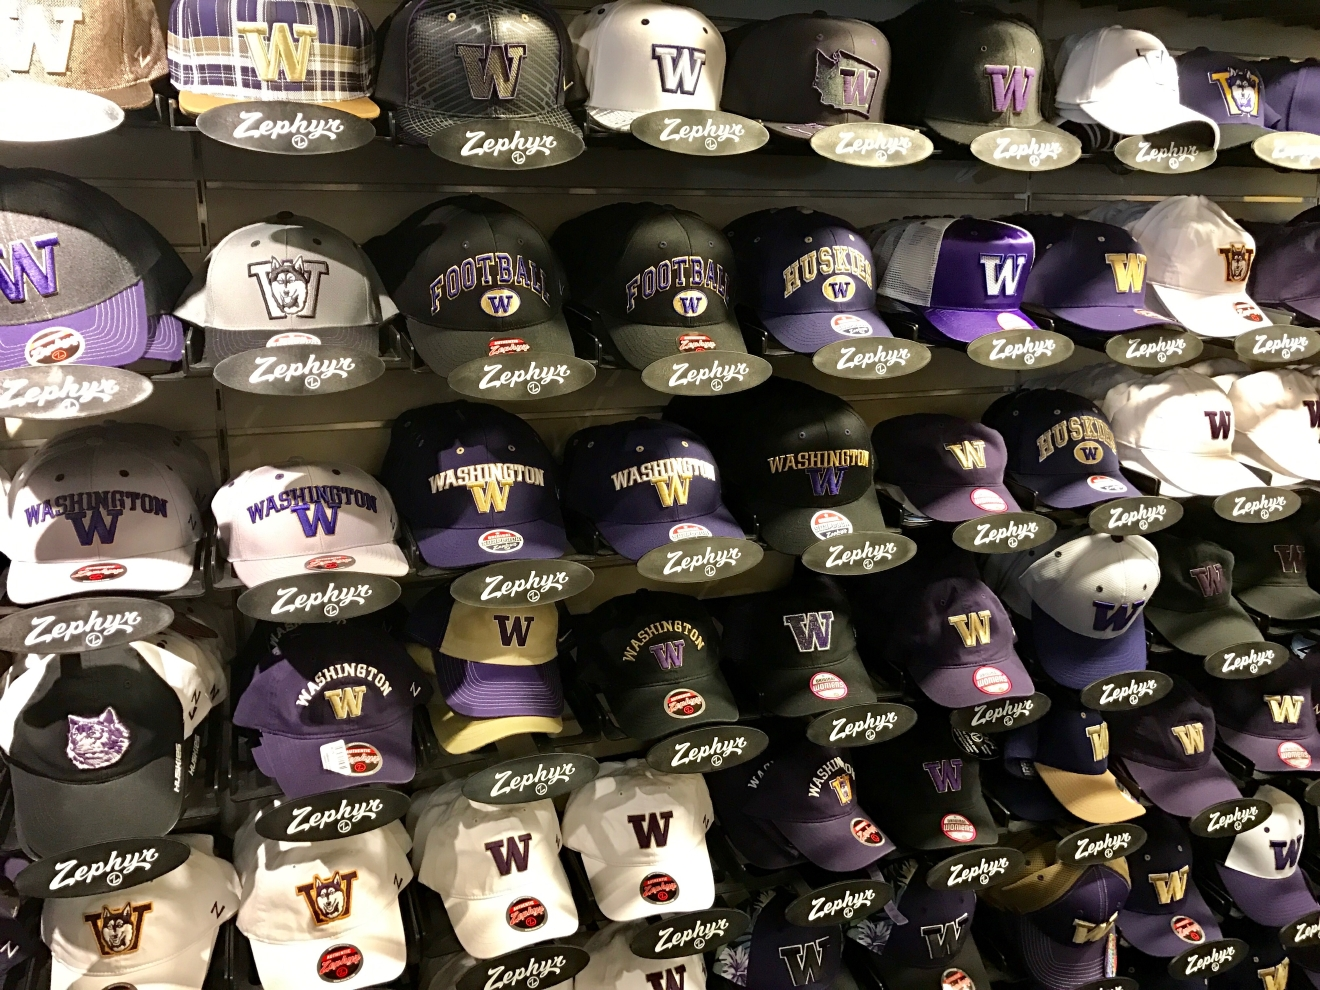 All the hats you could possibly ever want.                                          Whether you're a current student, alum, or just *love* the Dawgs, it's a pretty exciting time to be a Husky fan right now. Just to catch you up, the University of Washington football team is having one of their best seasons in years, and will be playing the Peach Bowl in Atlanta on December 31st. If you know a Dawg fan, they're probably salivating at the mouth right about now. Which is why it's a perfect time to give them a themed gift! Here are some of the coolest Husky gear we saw at the University Bookstore on the Avenue during our last visit. Pro Tip: They're open 10 a.m. - 7 p.m. on Christmas Eve! (Image: Britt Thorson / Seattle Refined)